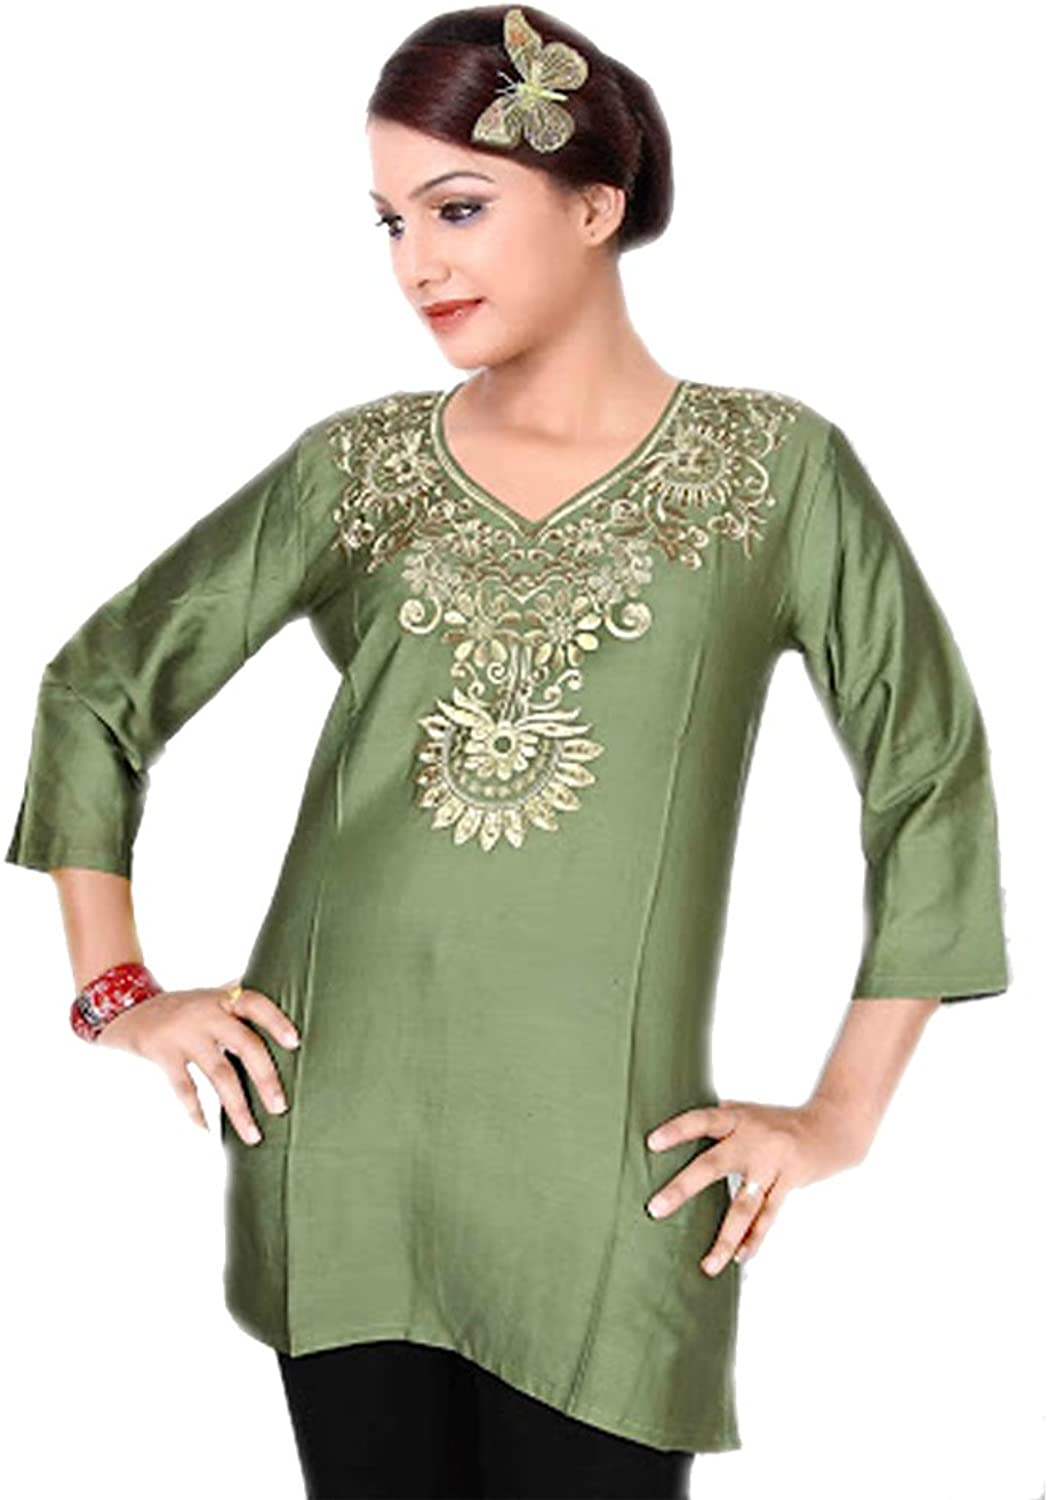 1545 Designs Women's Green Silk Tunic V Neck Embroidered Top